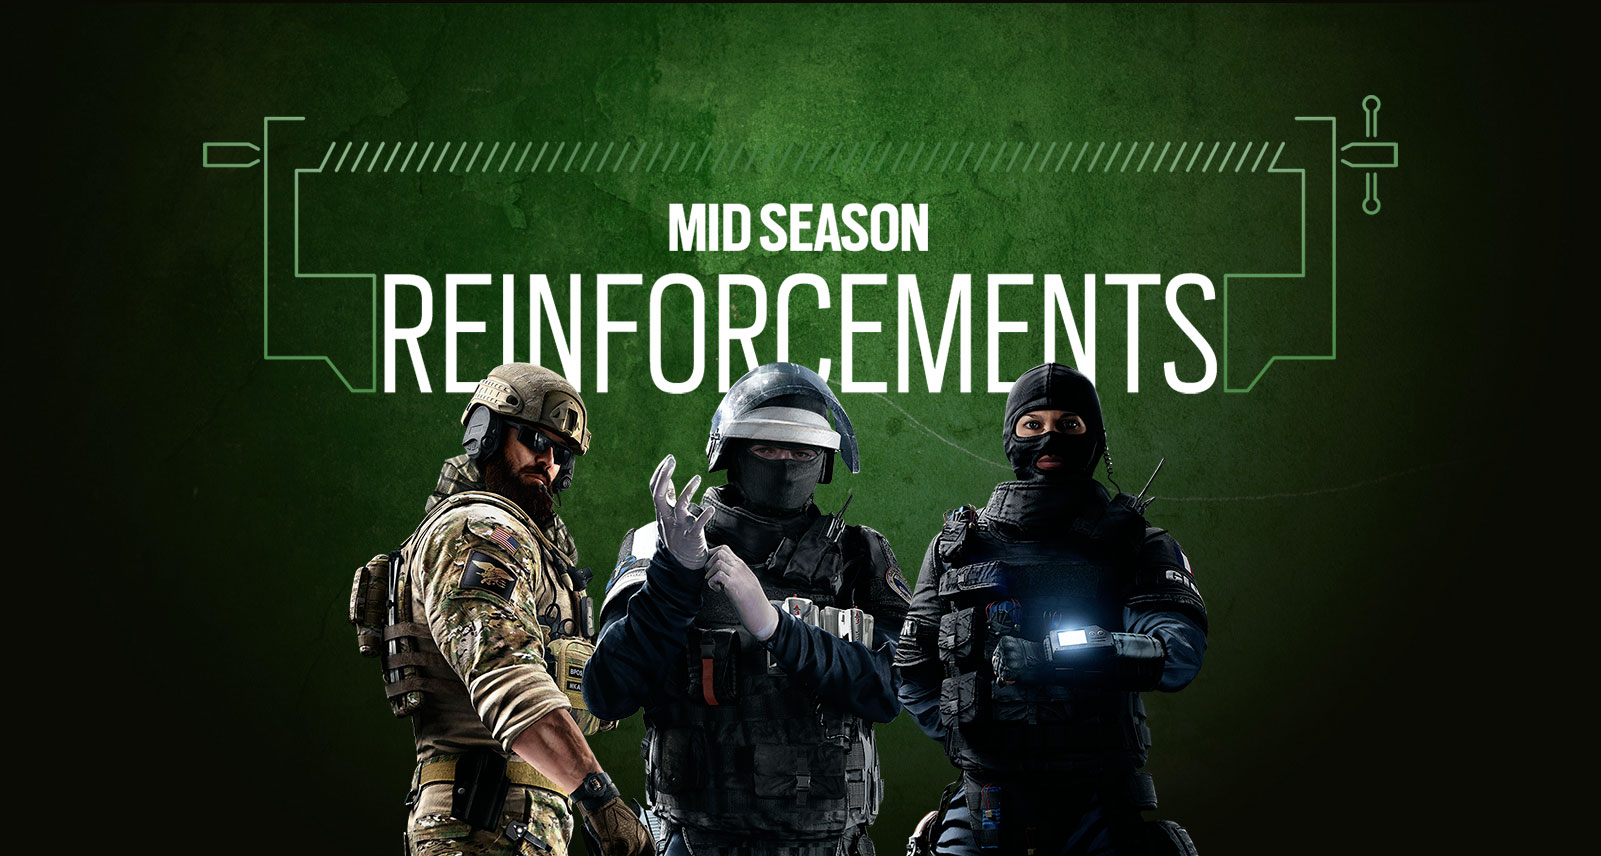 Rainbow Six Siege gets mid season reinforcements | This Is Xbox